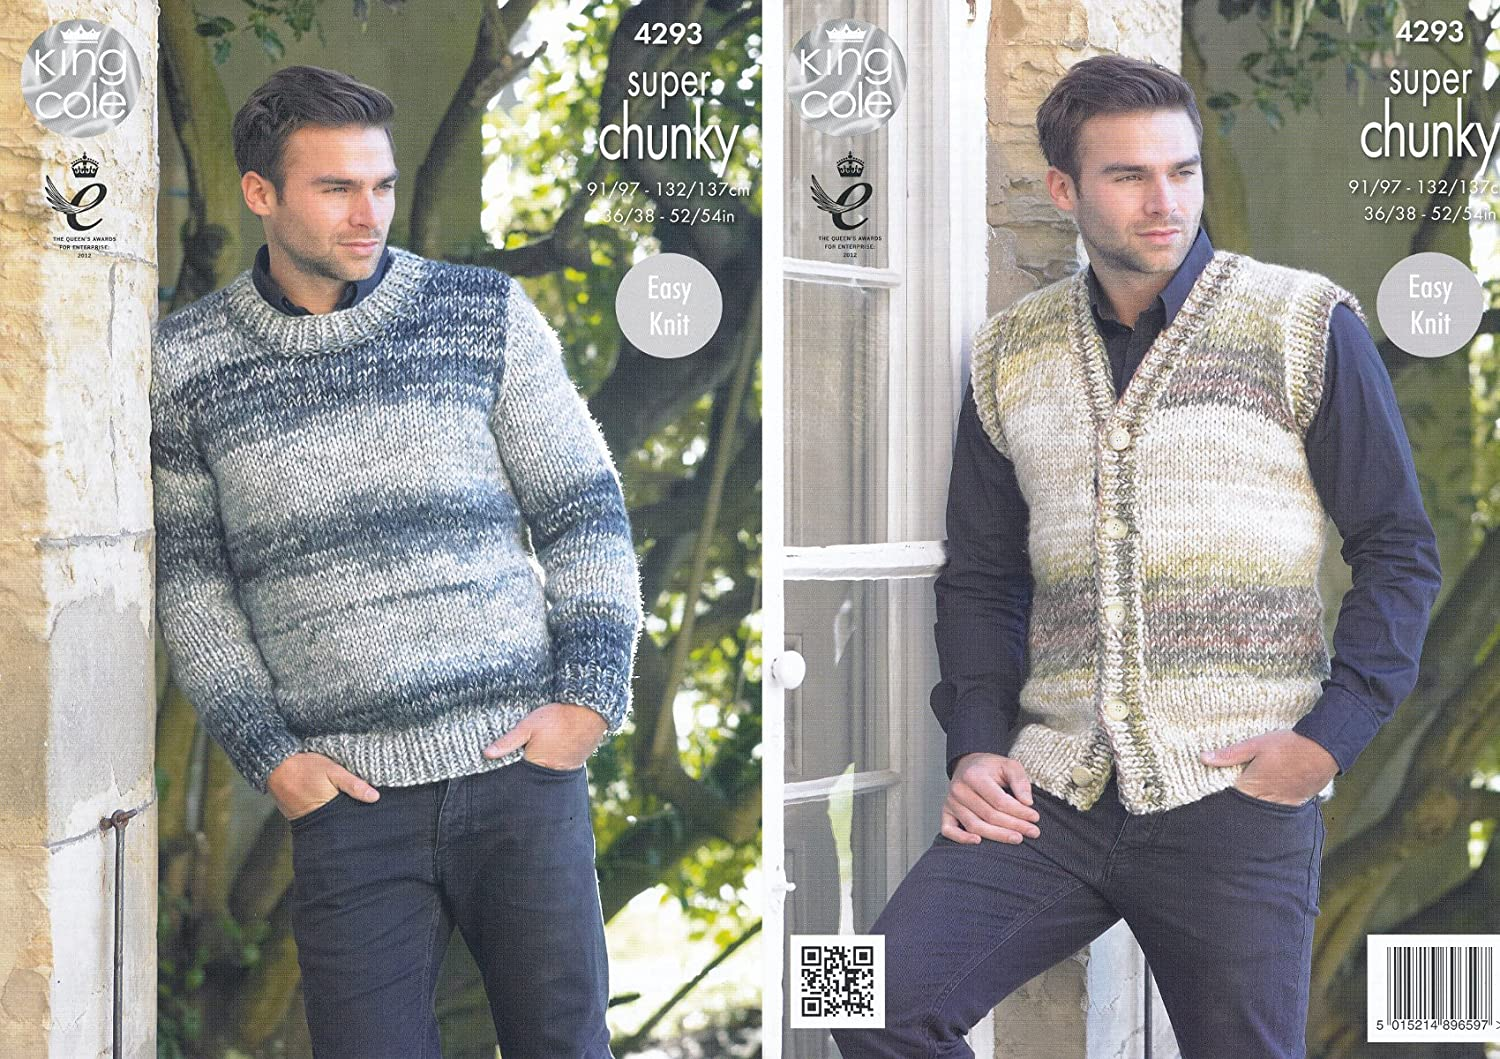 37f7005e6 Amazon.com  King Cole Mens Easy Knit Super Chunky Tints Knitting Pattern  Waistcoat   Round Neck Sweater (4293)  Arts